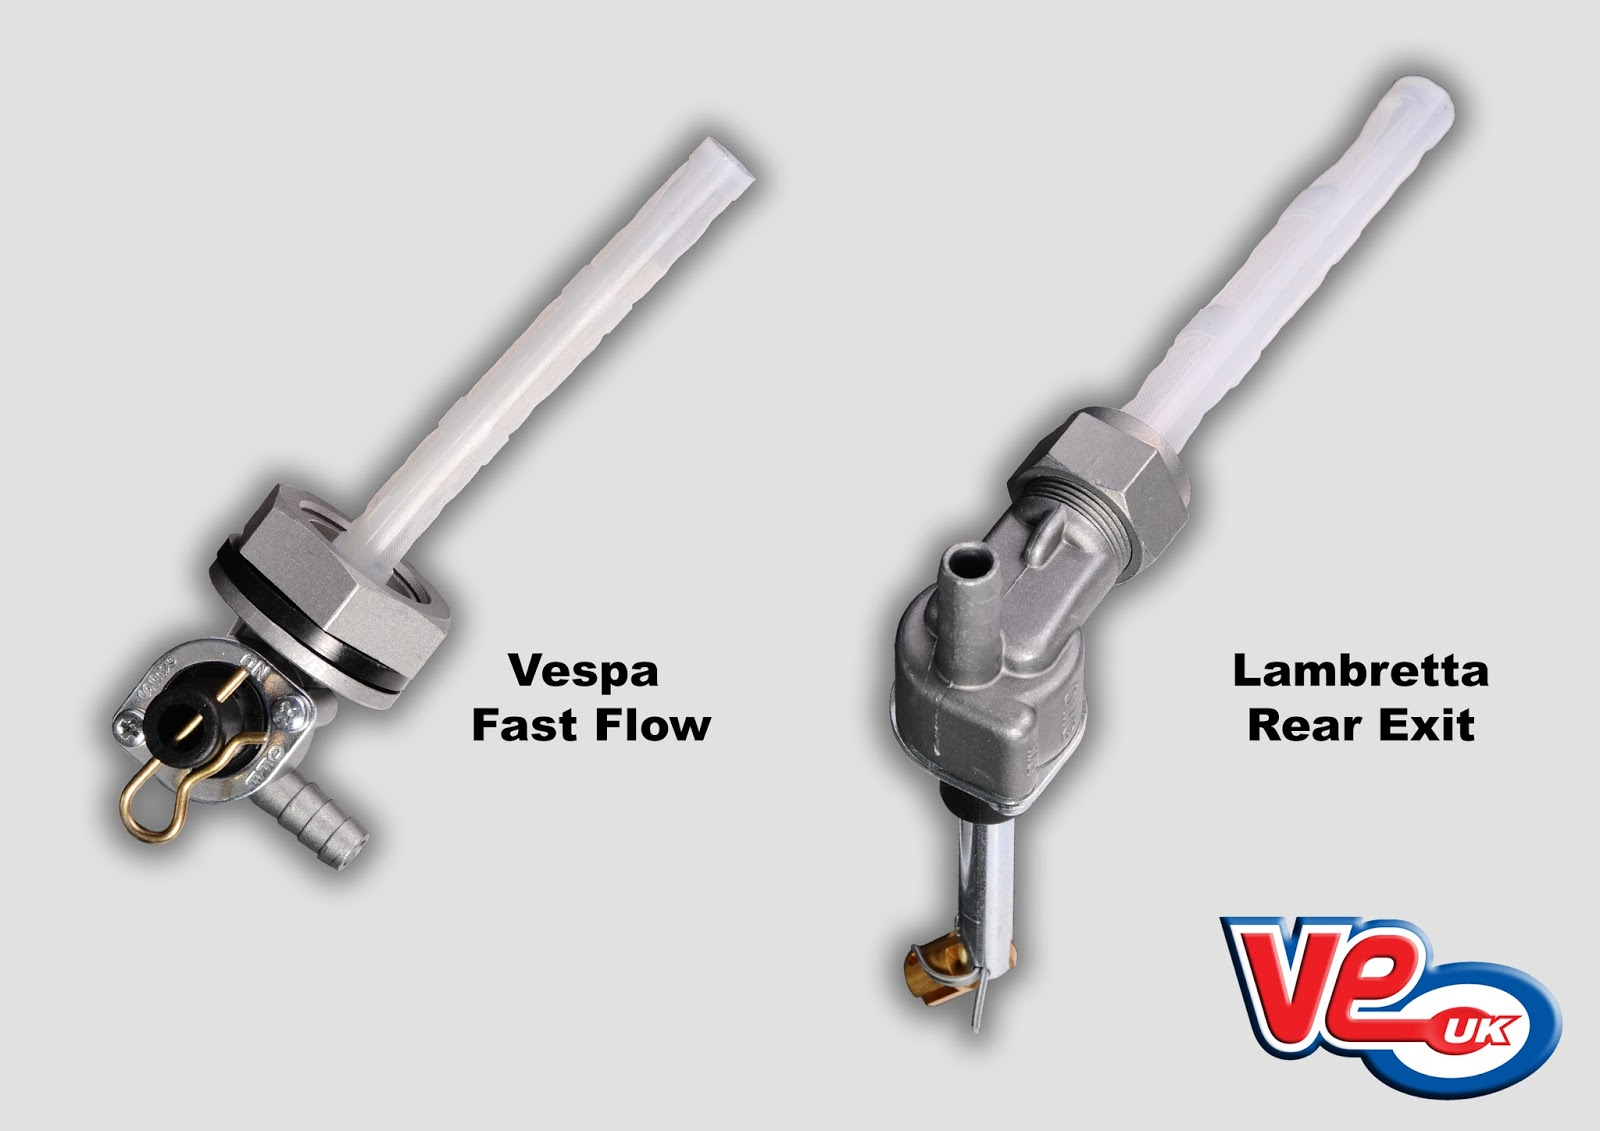 Lambretta and Vespa Fast Flow Fuel Taps